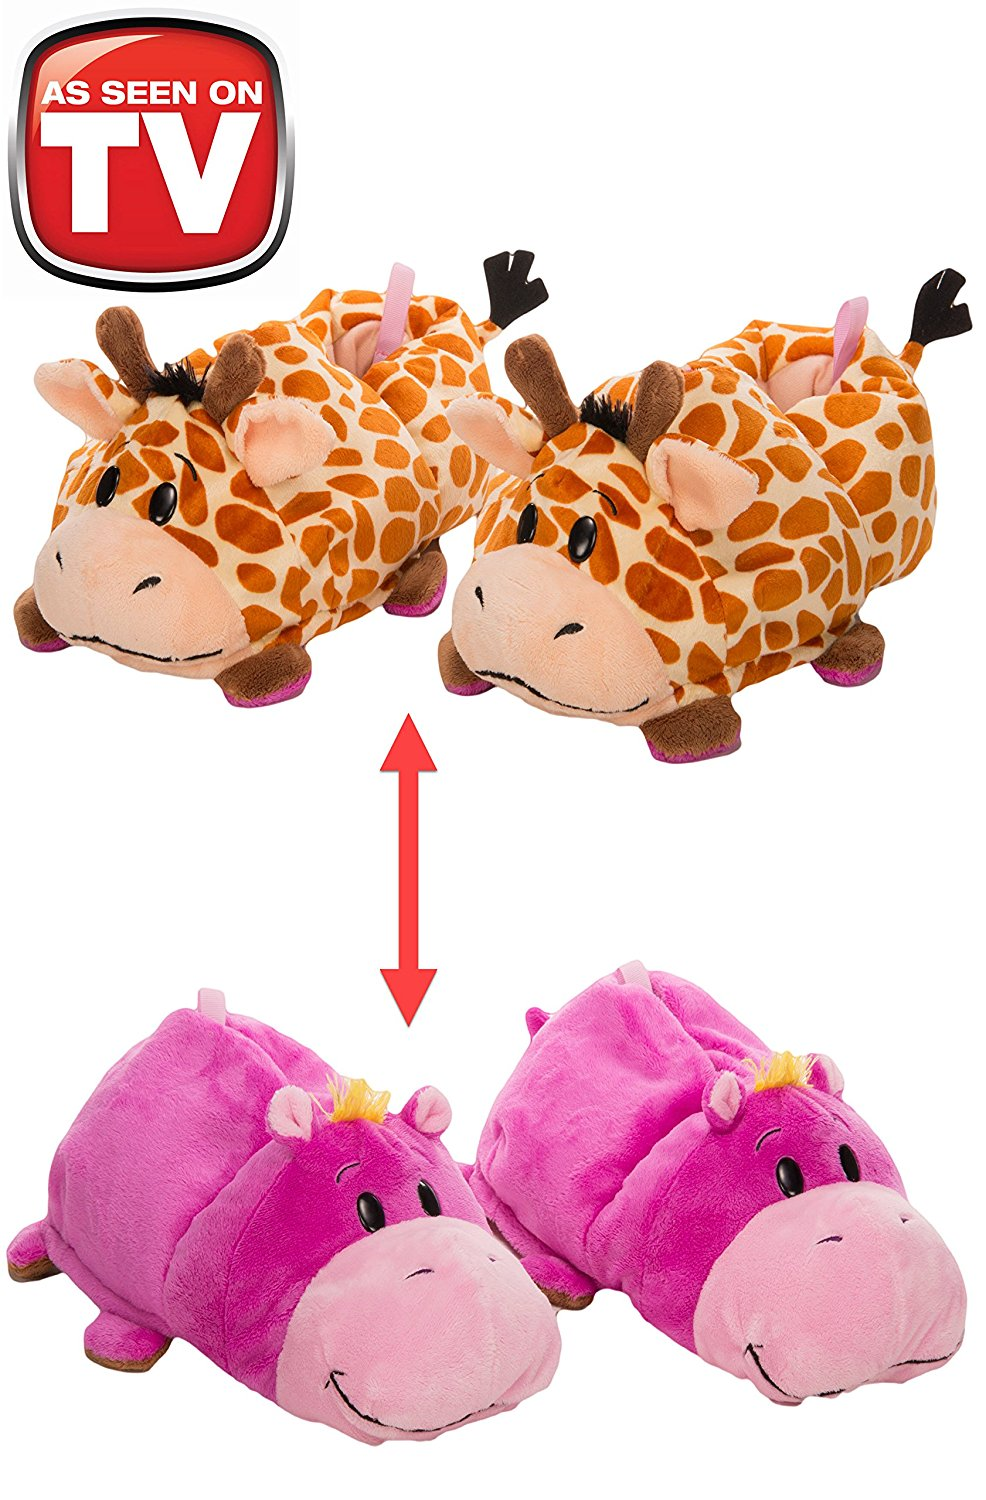 92687505639 Get Quotations · FlipaZoo SlipaZoos by Jay at Play (Giraffe to Hippo  Medium)  - Transforming Animal